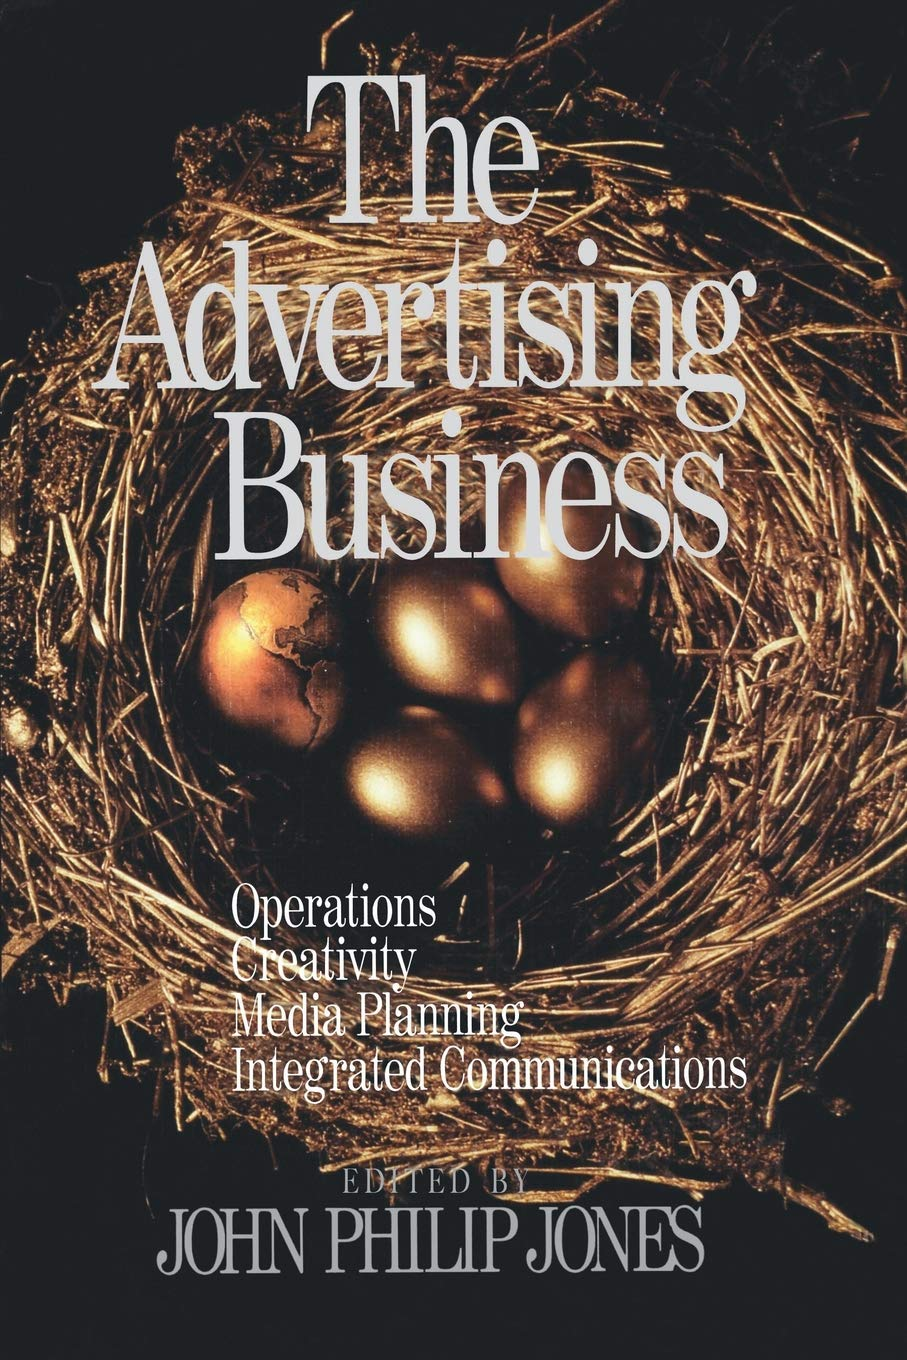 The Advertising Business: Operations, Creativity, Media